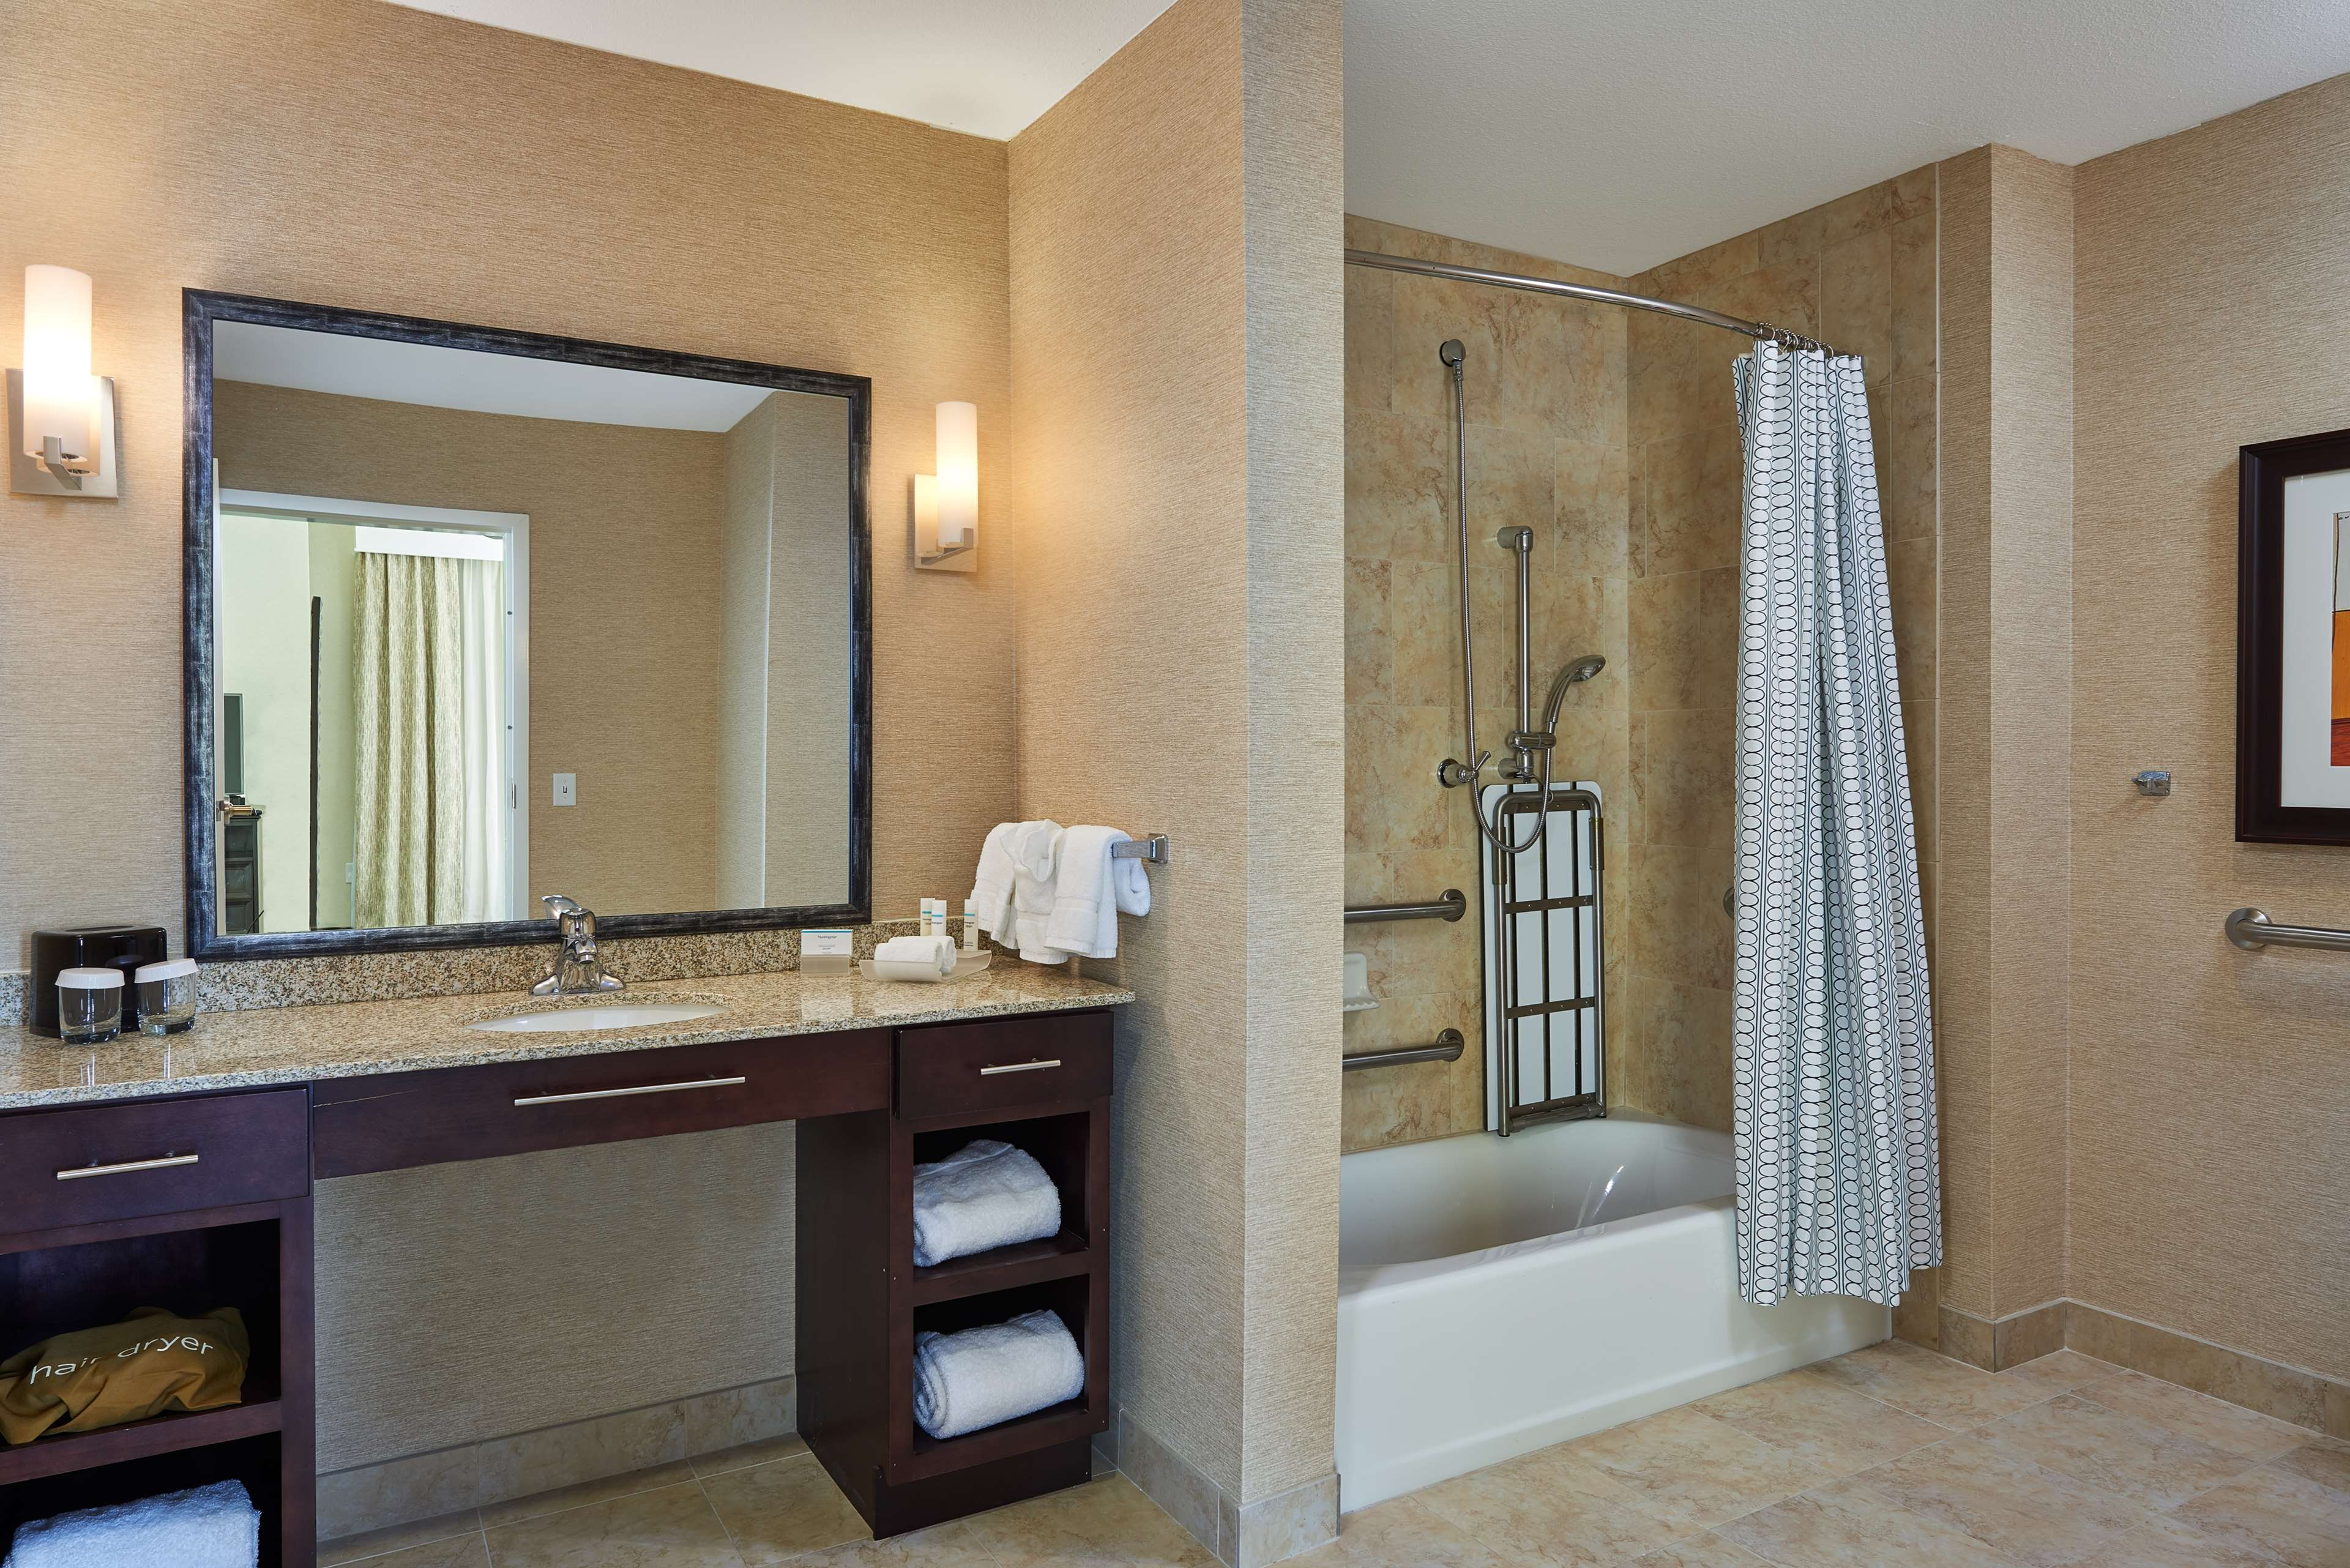 Homewood Suites by Hilton Odessa image 10